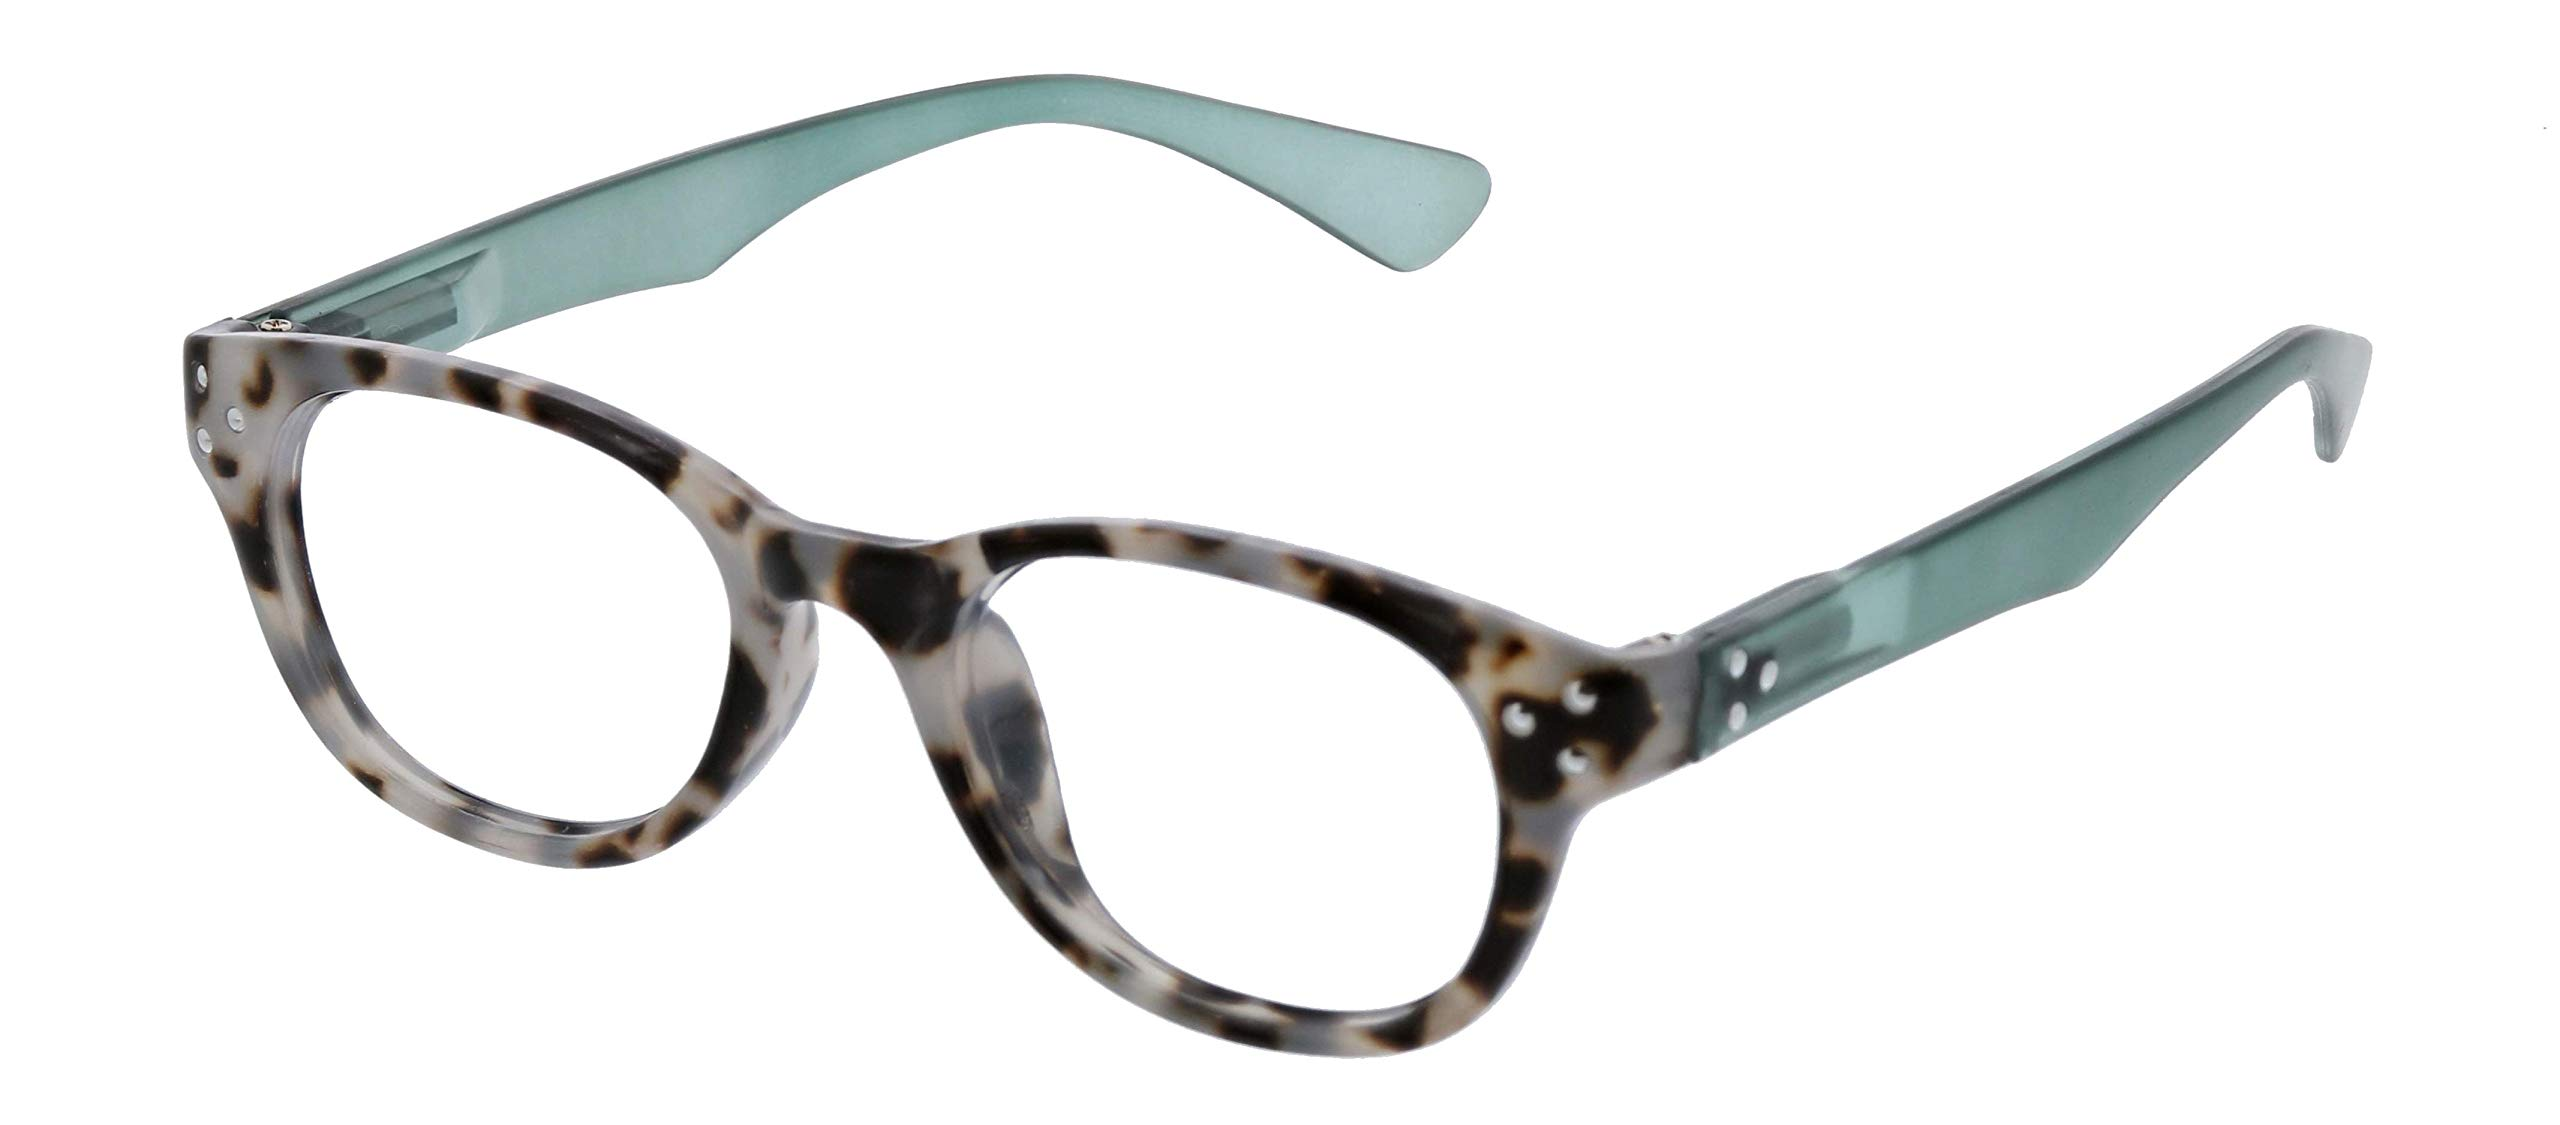 Peepers unisex-adult Reading Glasses Reading Glasses ,Show Stopper - Gray Tortoise/Green , 2.5 by Peepers